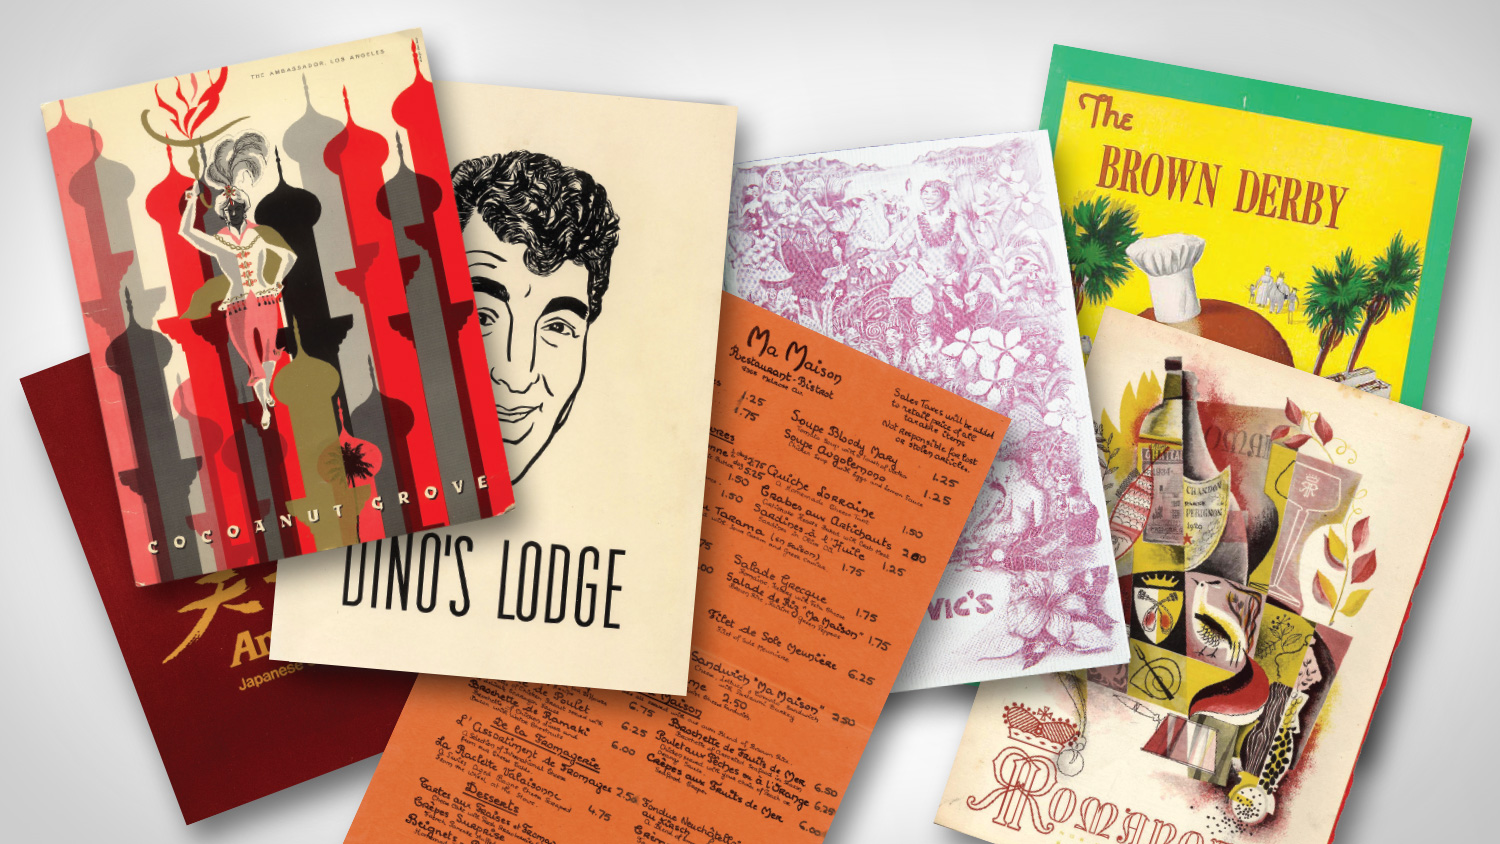 If These Menus Could Talk: The History of L.A. Power Dining Revealed